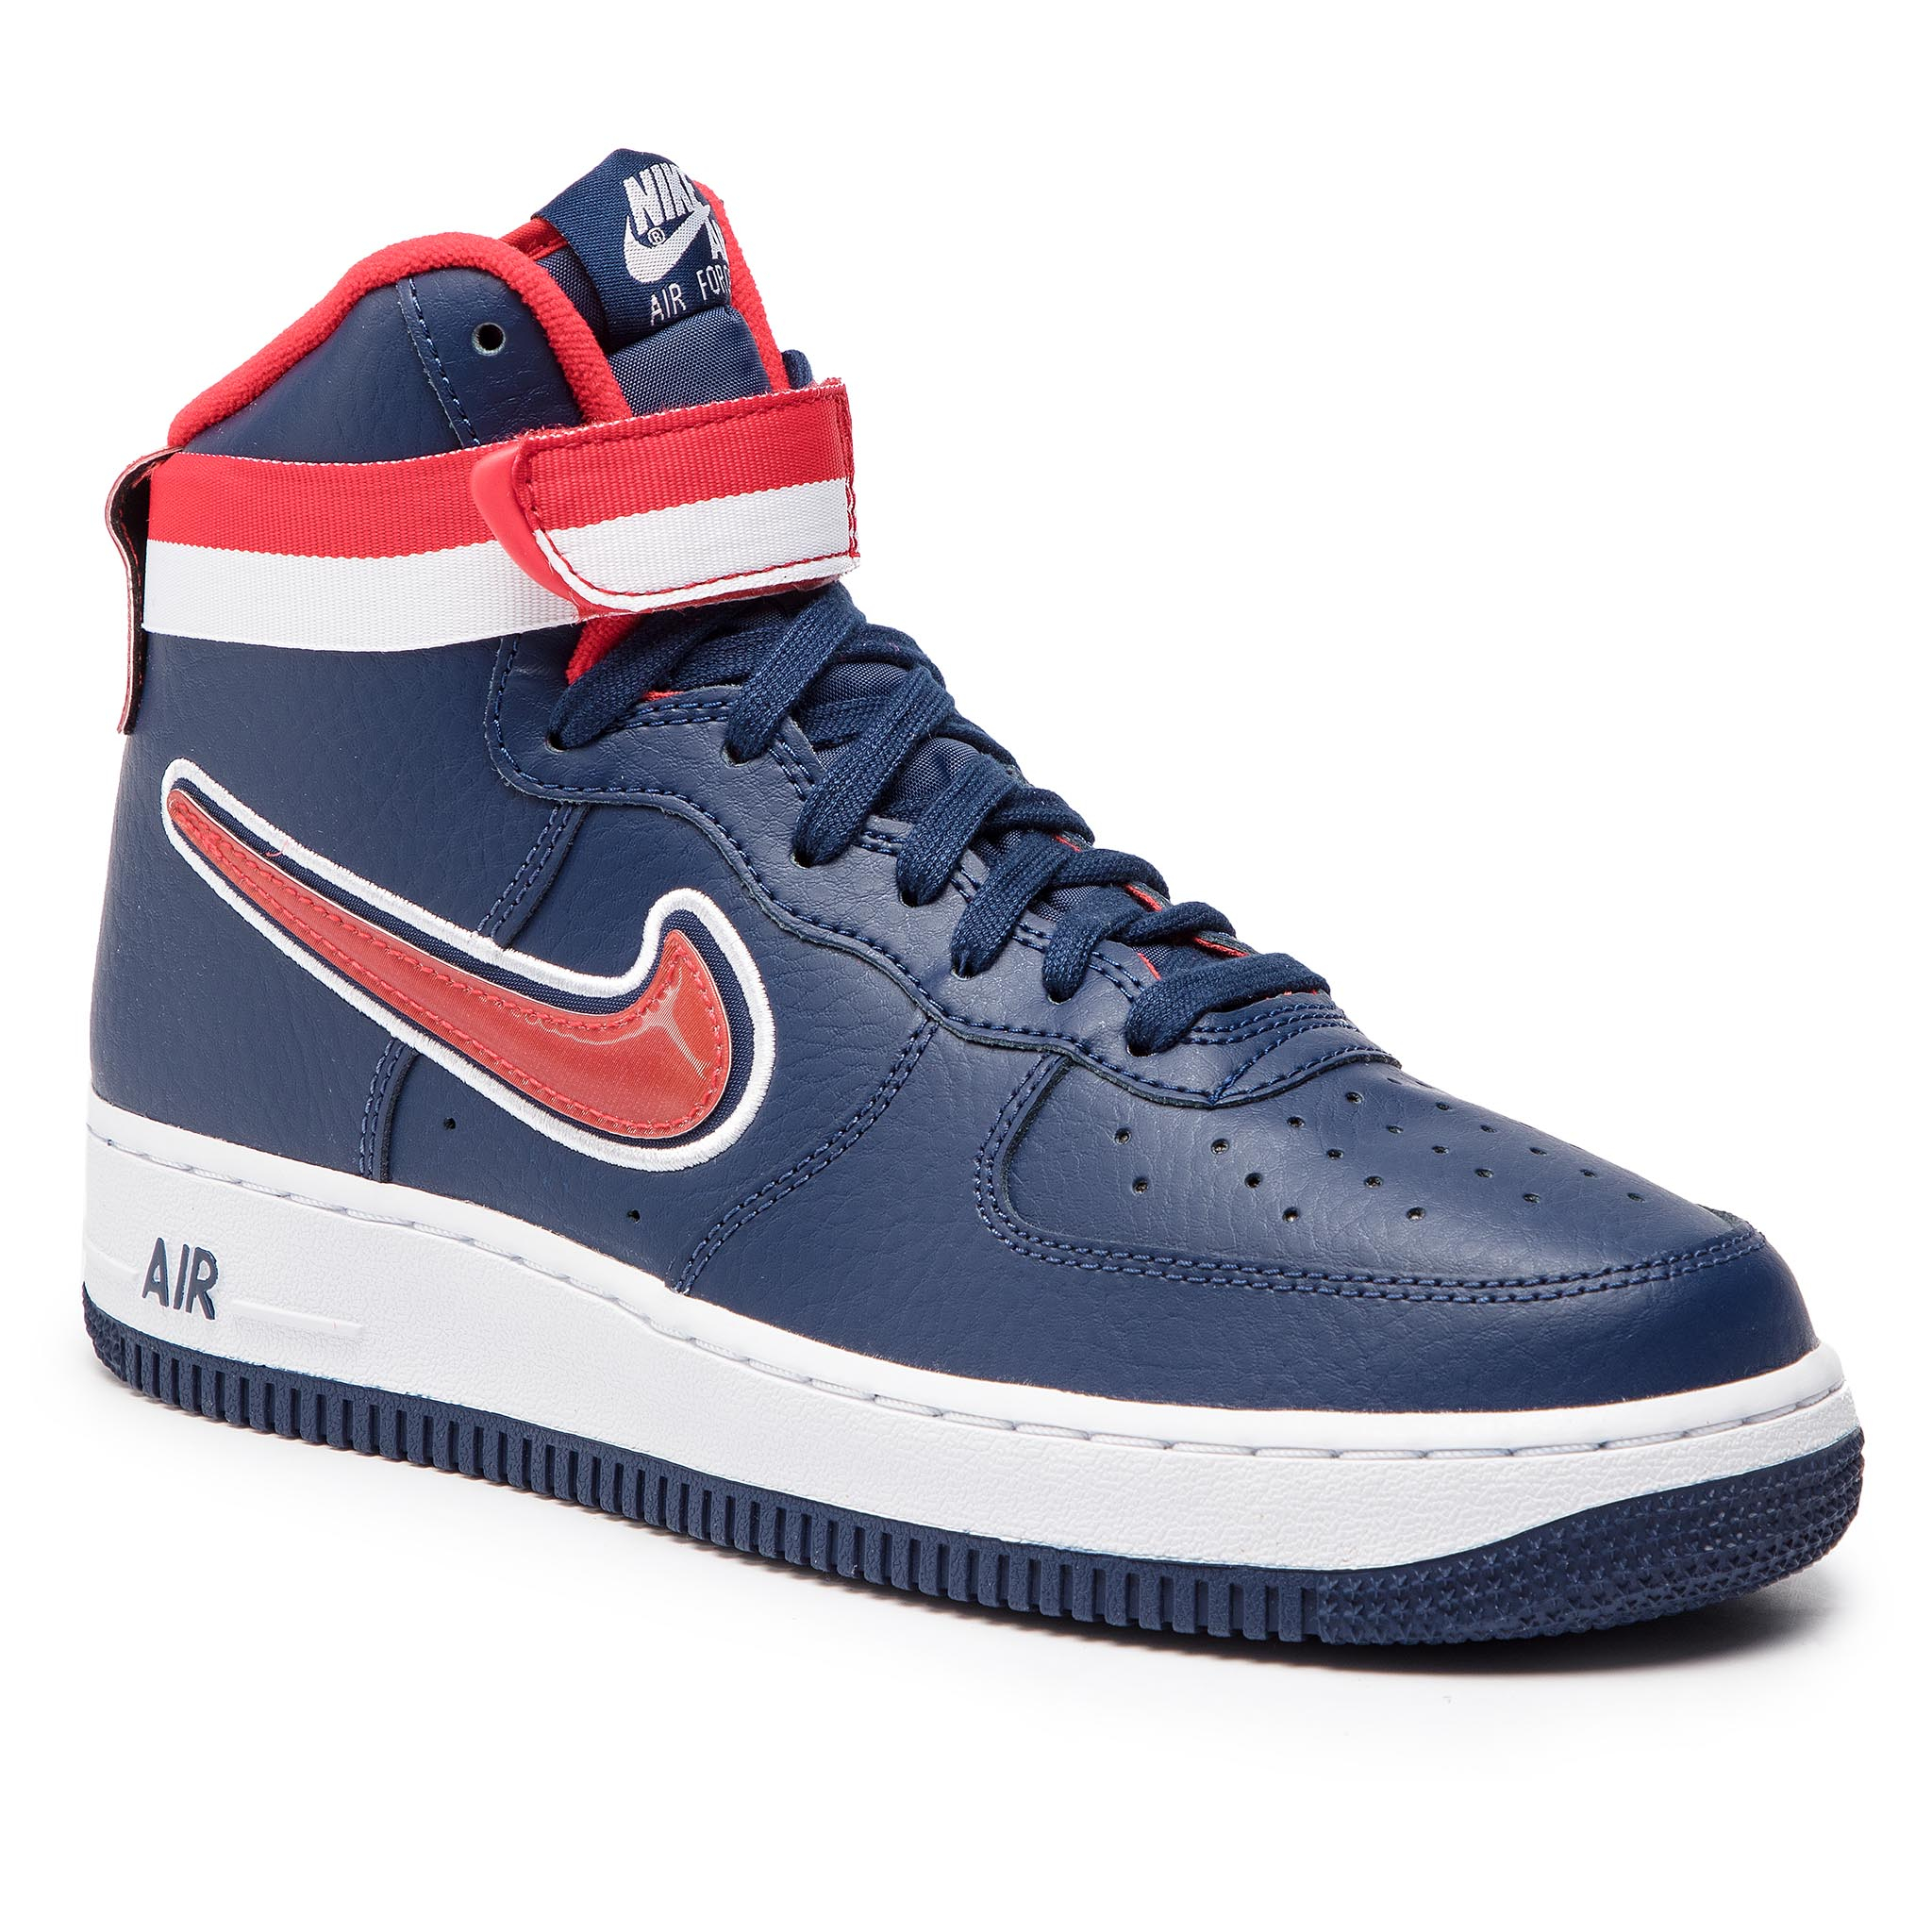 6082fc3446811 Boty NIKE - Air Force 1 High '07 Lv 8 Sport AV3938 400 Midnight Navy